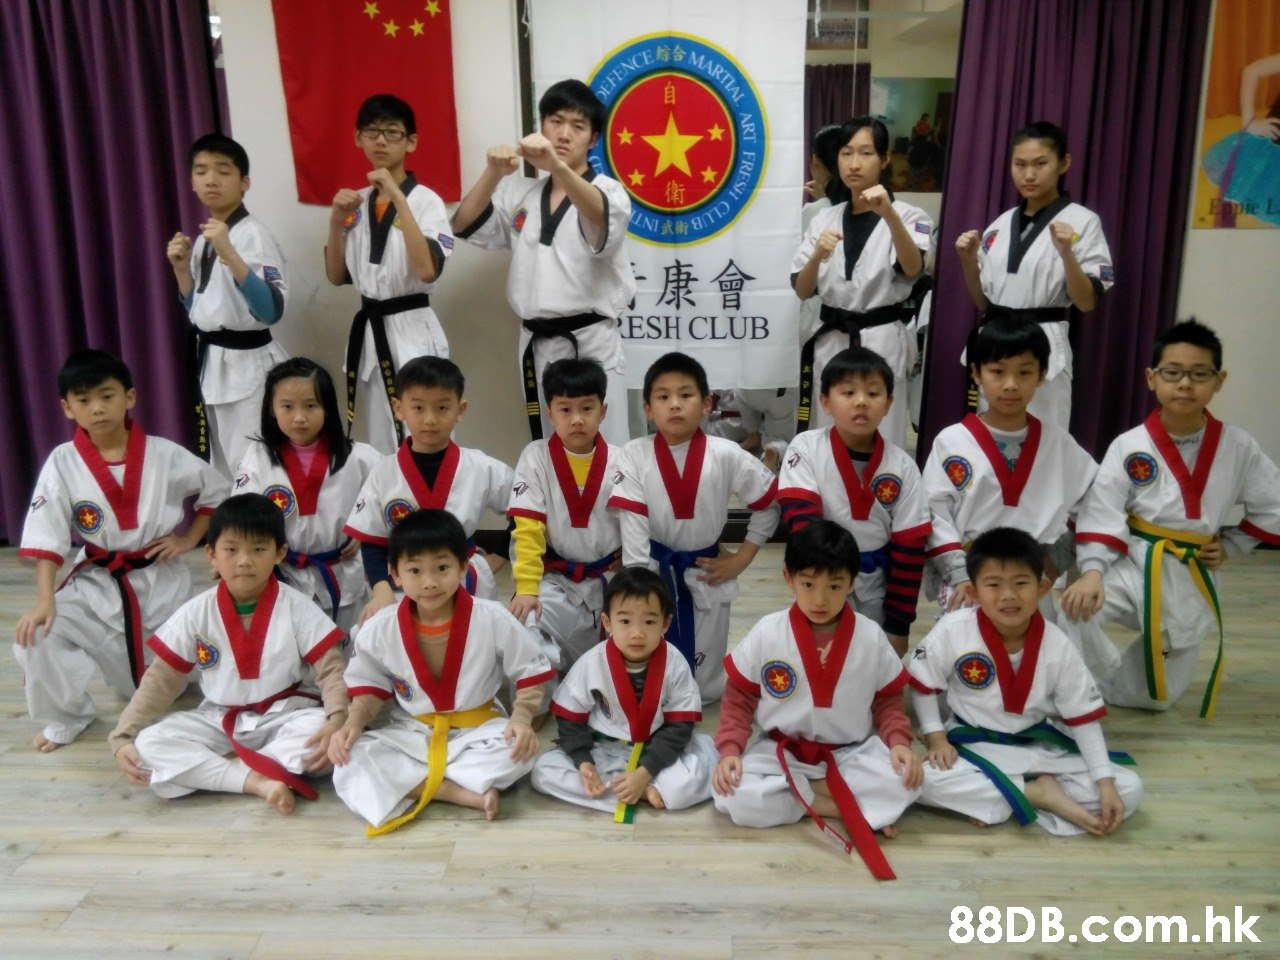 EFENCE & MARTIAL AH BITD :康會 oie L ESH CLUB .hk ART FRESH  Martial arts uniform,Sports,Choi kwang-do,Tang soo do,Individual sports